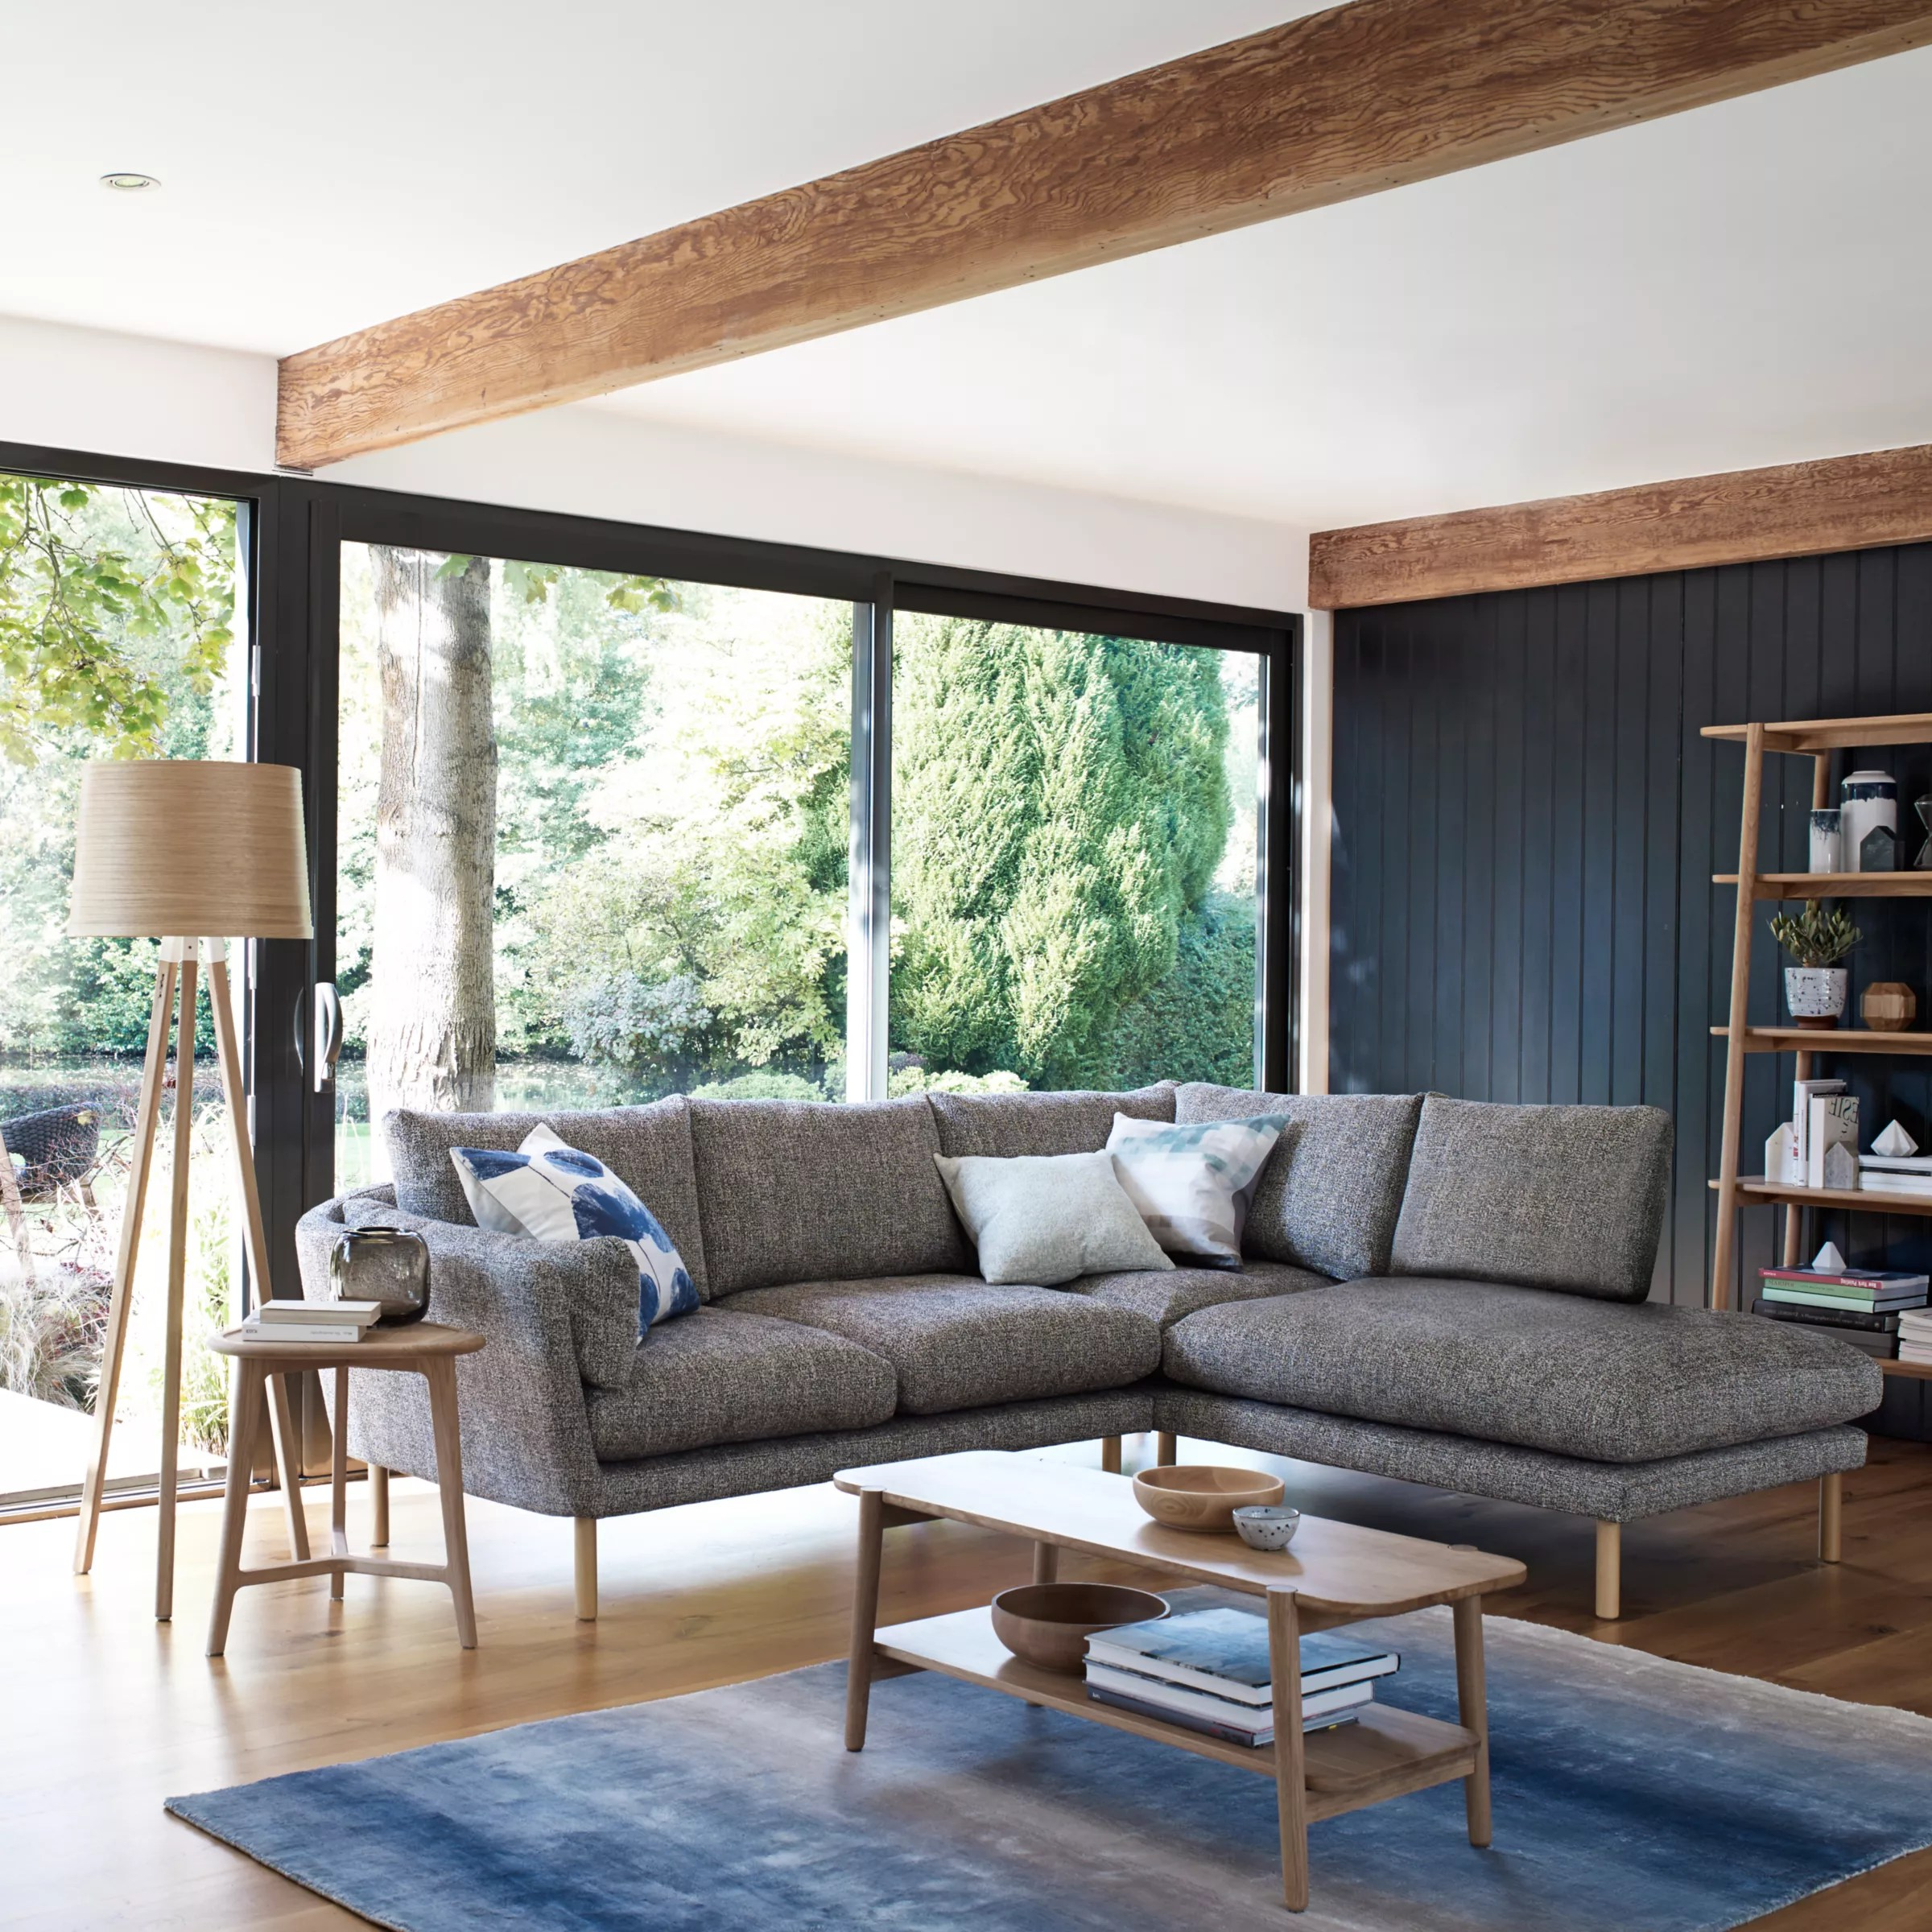 no coffee table living room design ideas blue couch project by john lewis 022 oak at buydesign online johnlewis